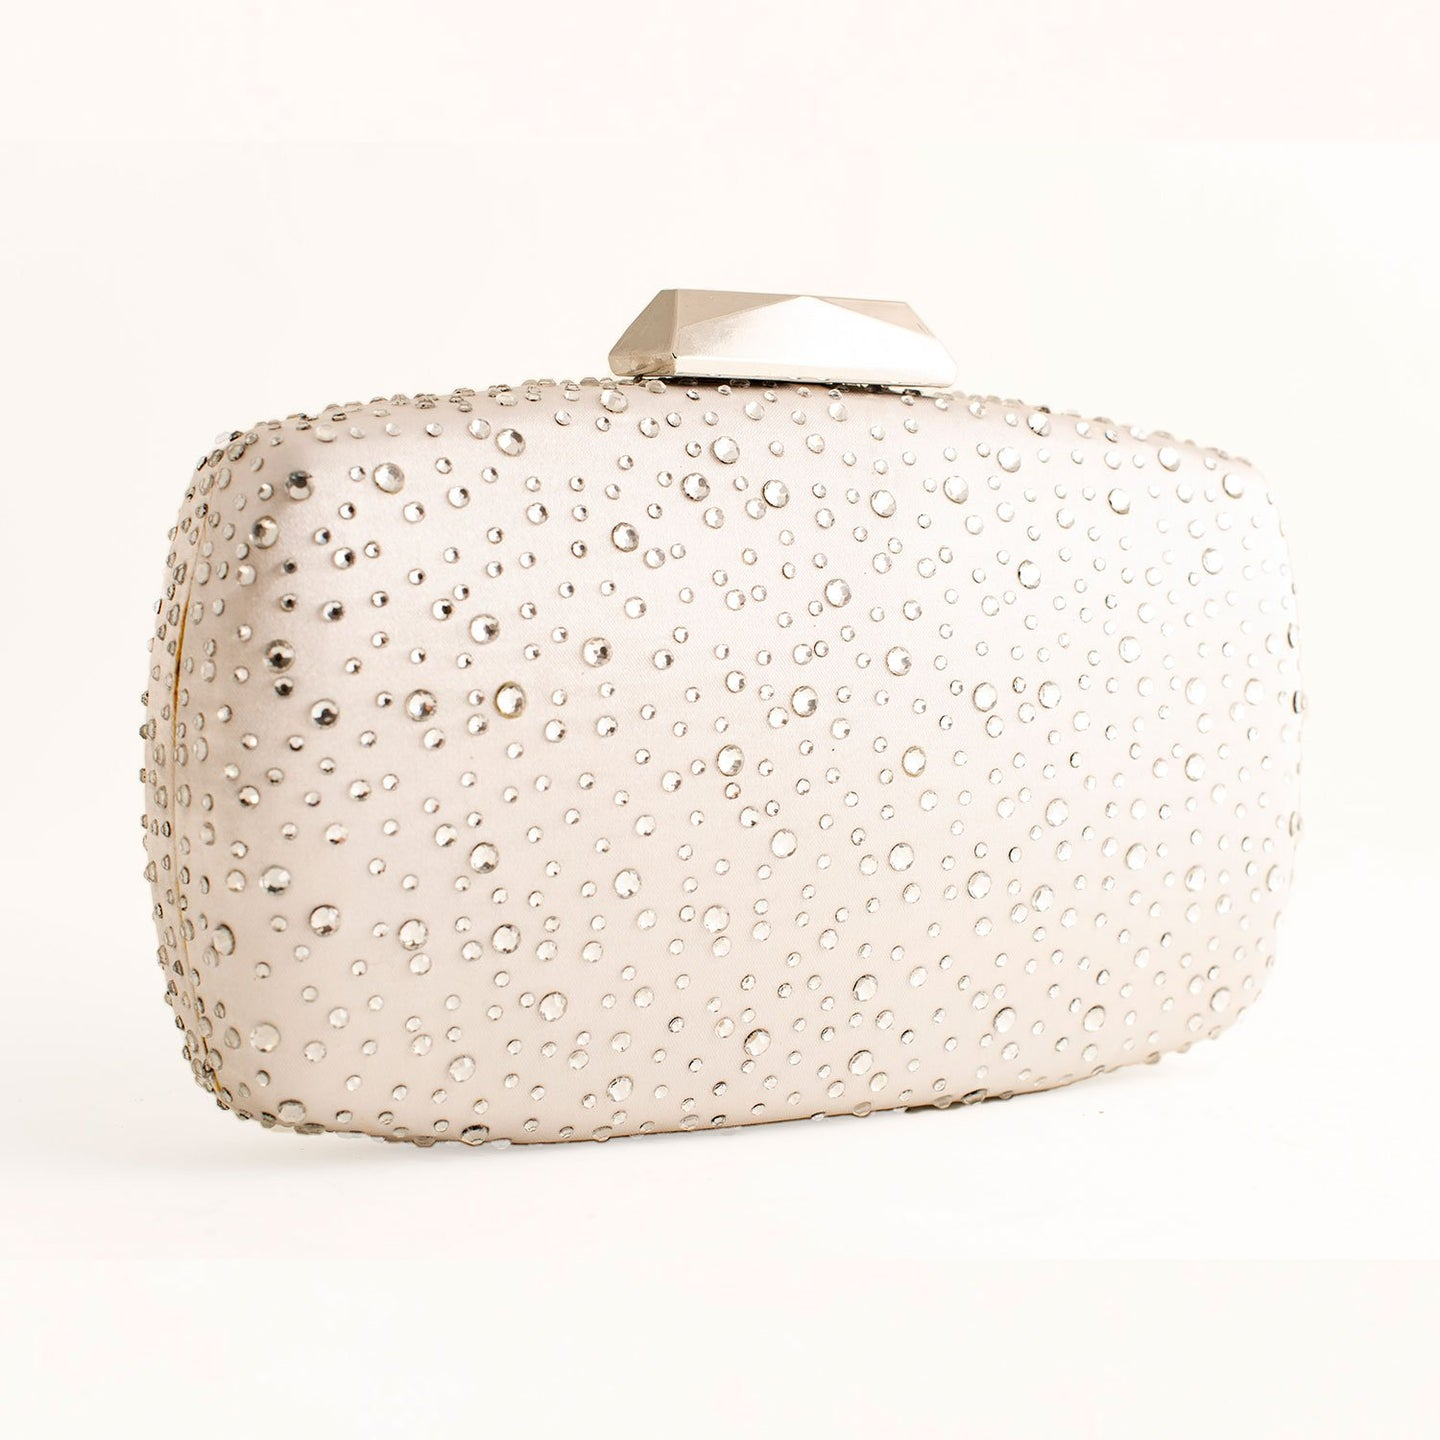 SILVER GREY CLUTCH EVENING BAG WITH SPARKLE CRYSTALS